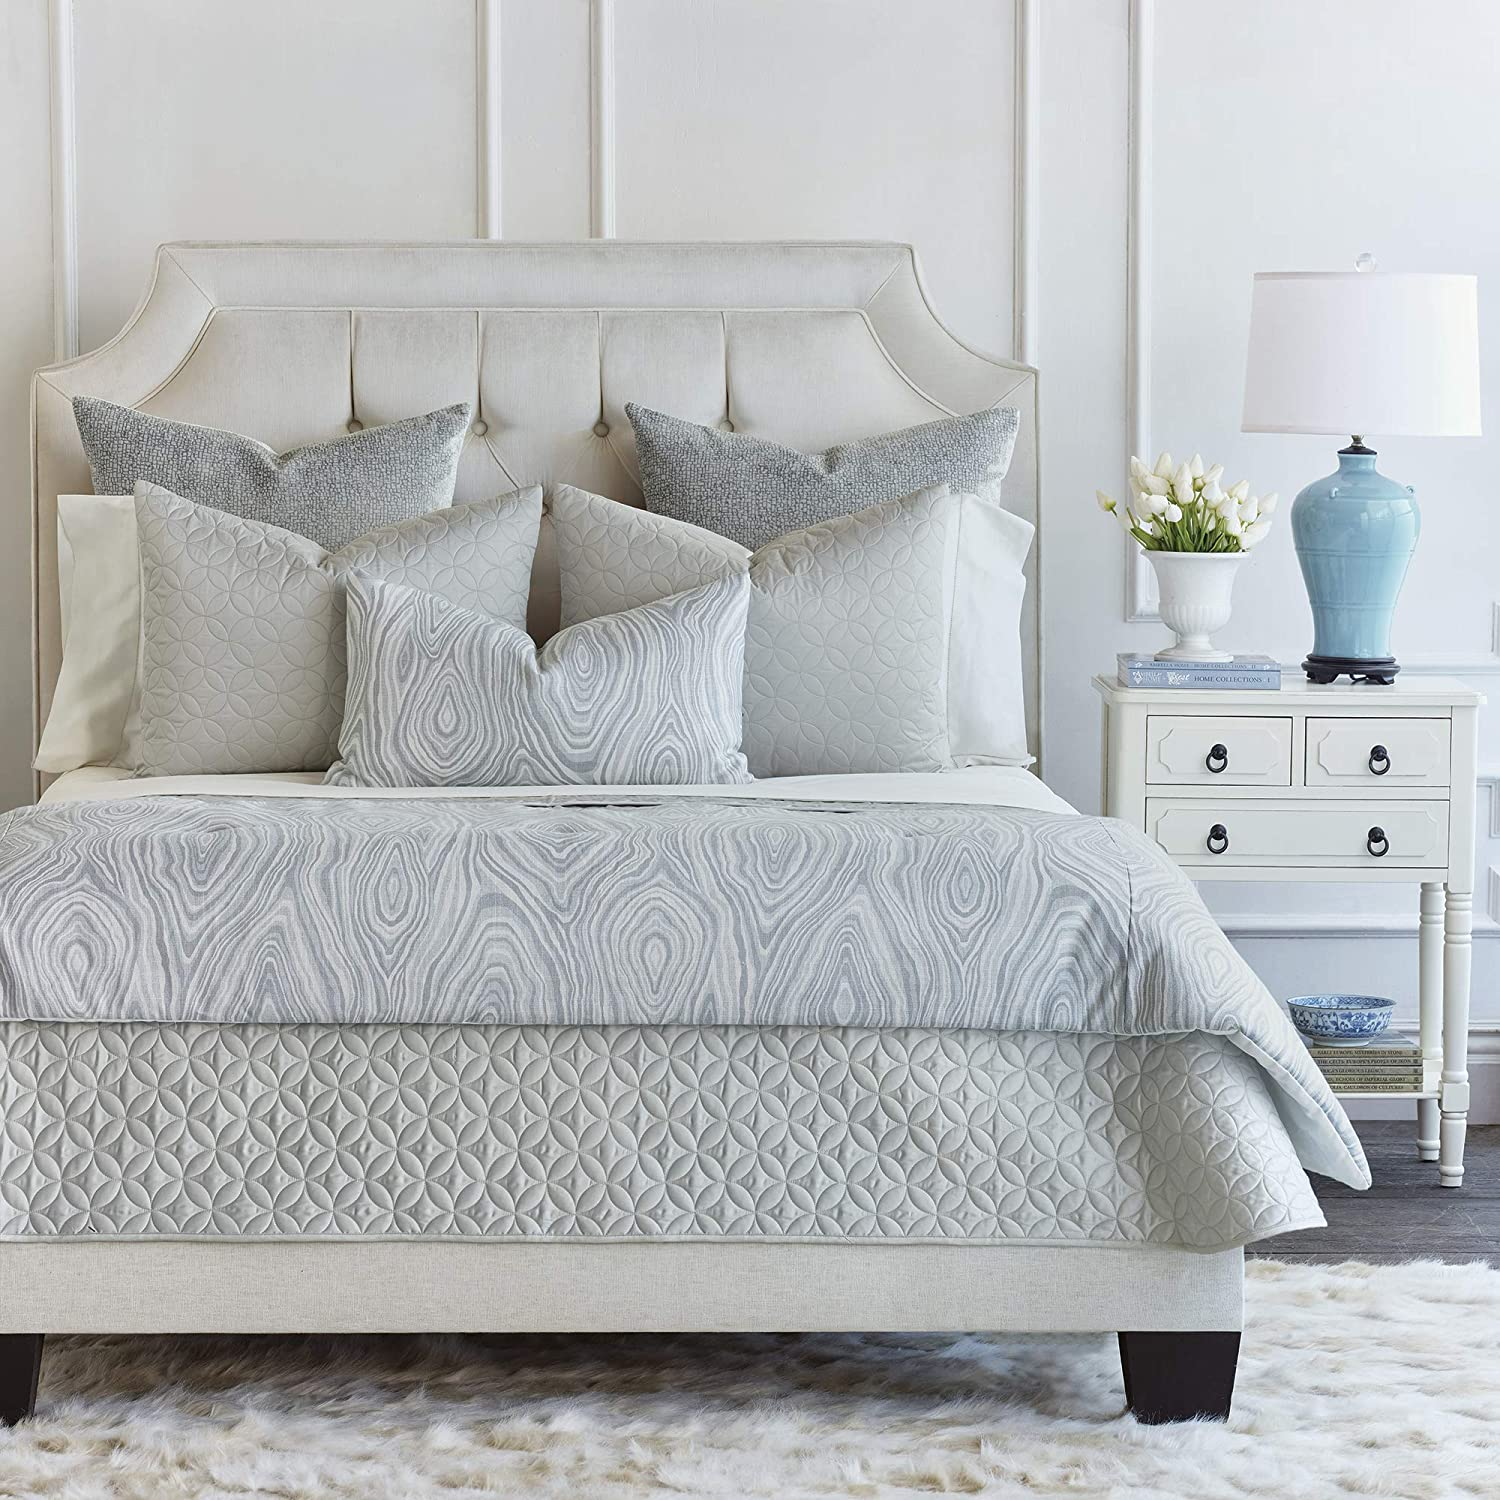 Eastern Accents Torro Transitional King Charlotte Mall Coverlet Excellence Set Gray Bed